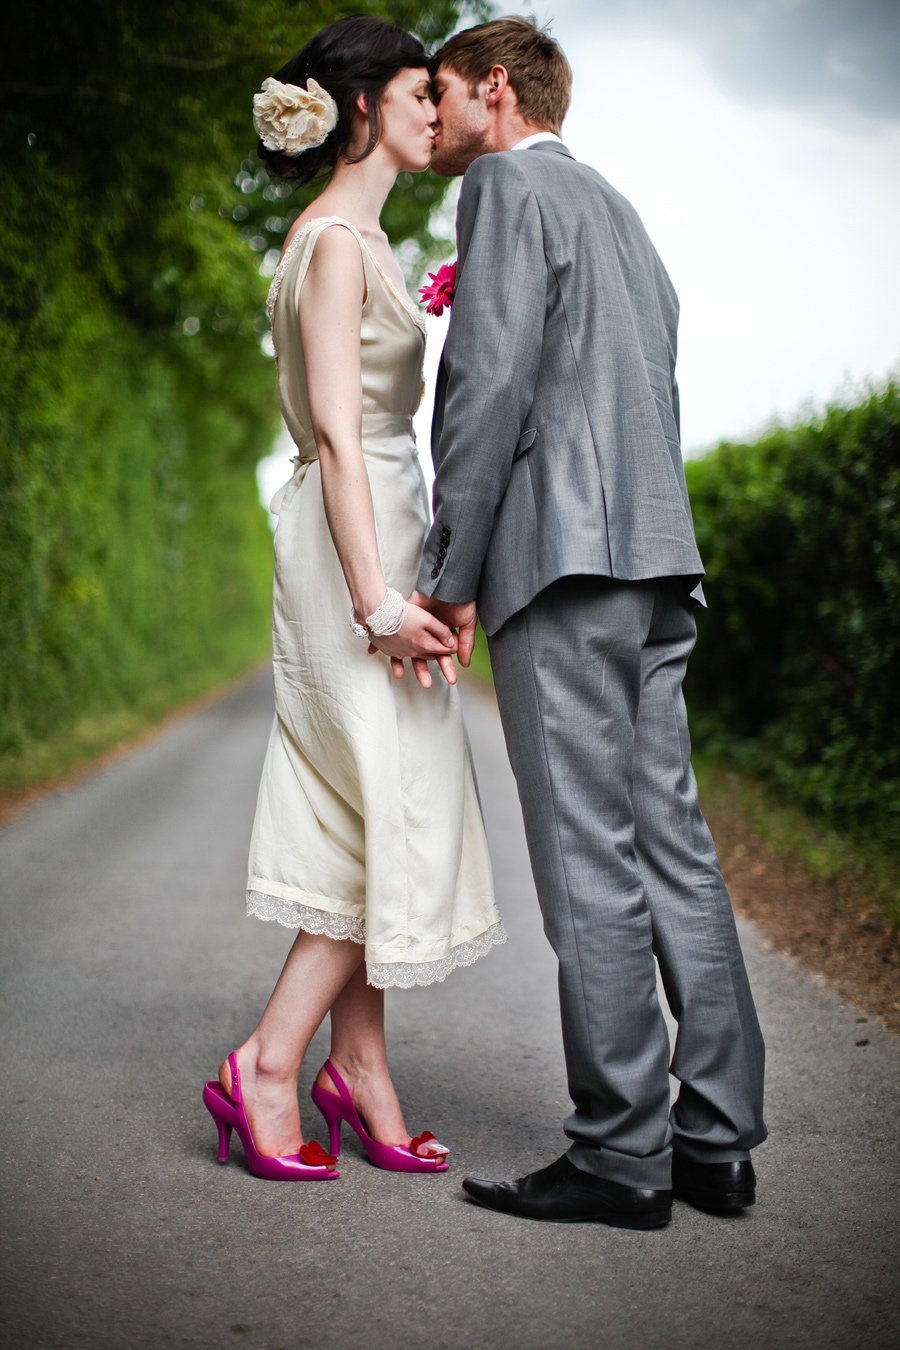 Berkshire-Wedding-Photography-Fazackarley-Aisling-and-Philip-28